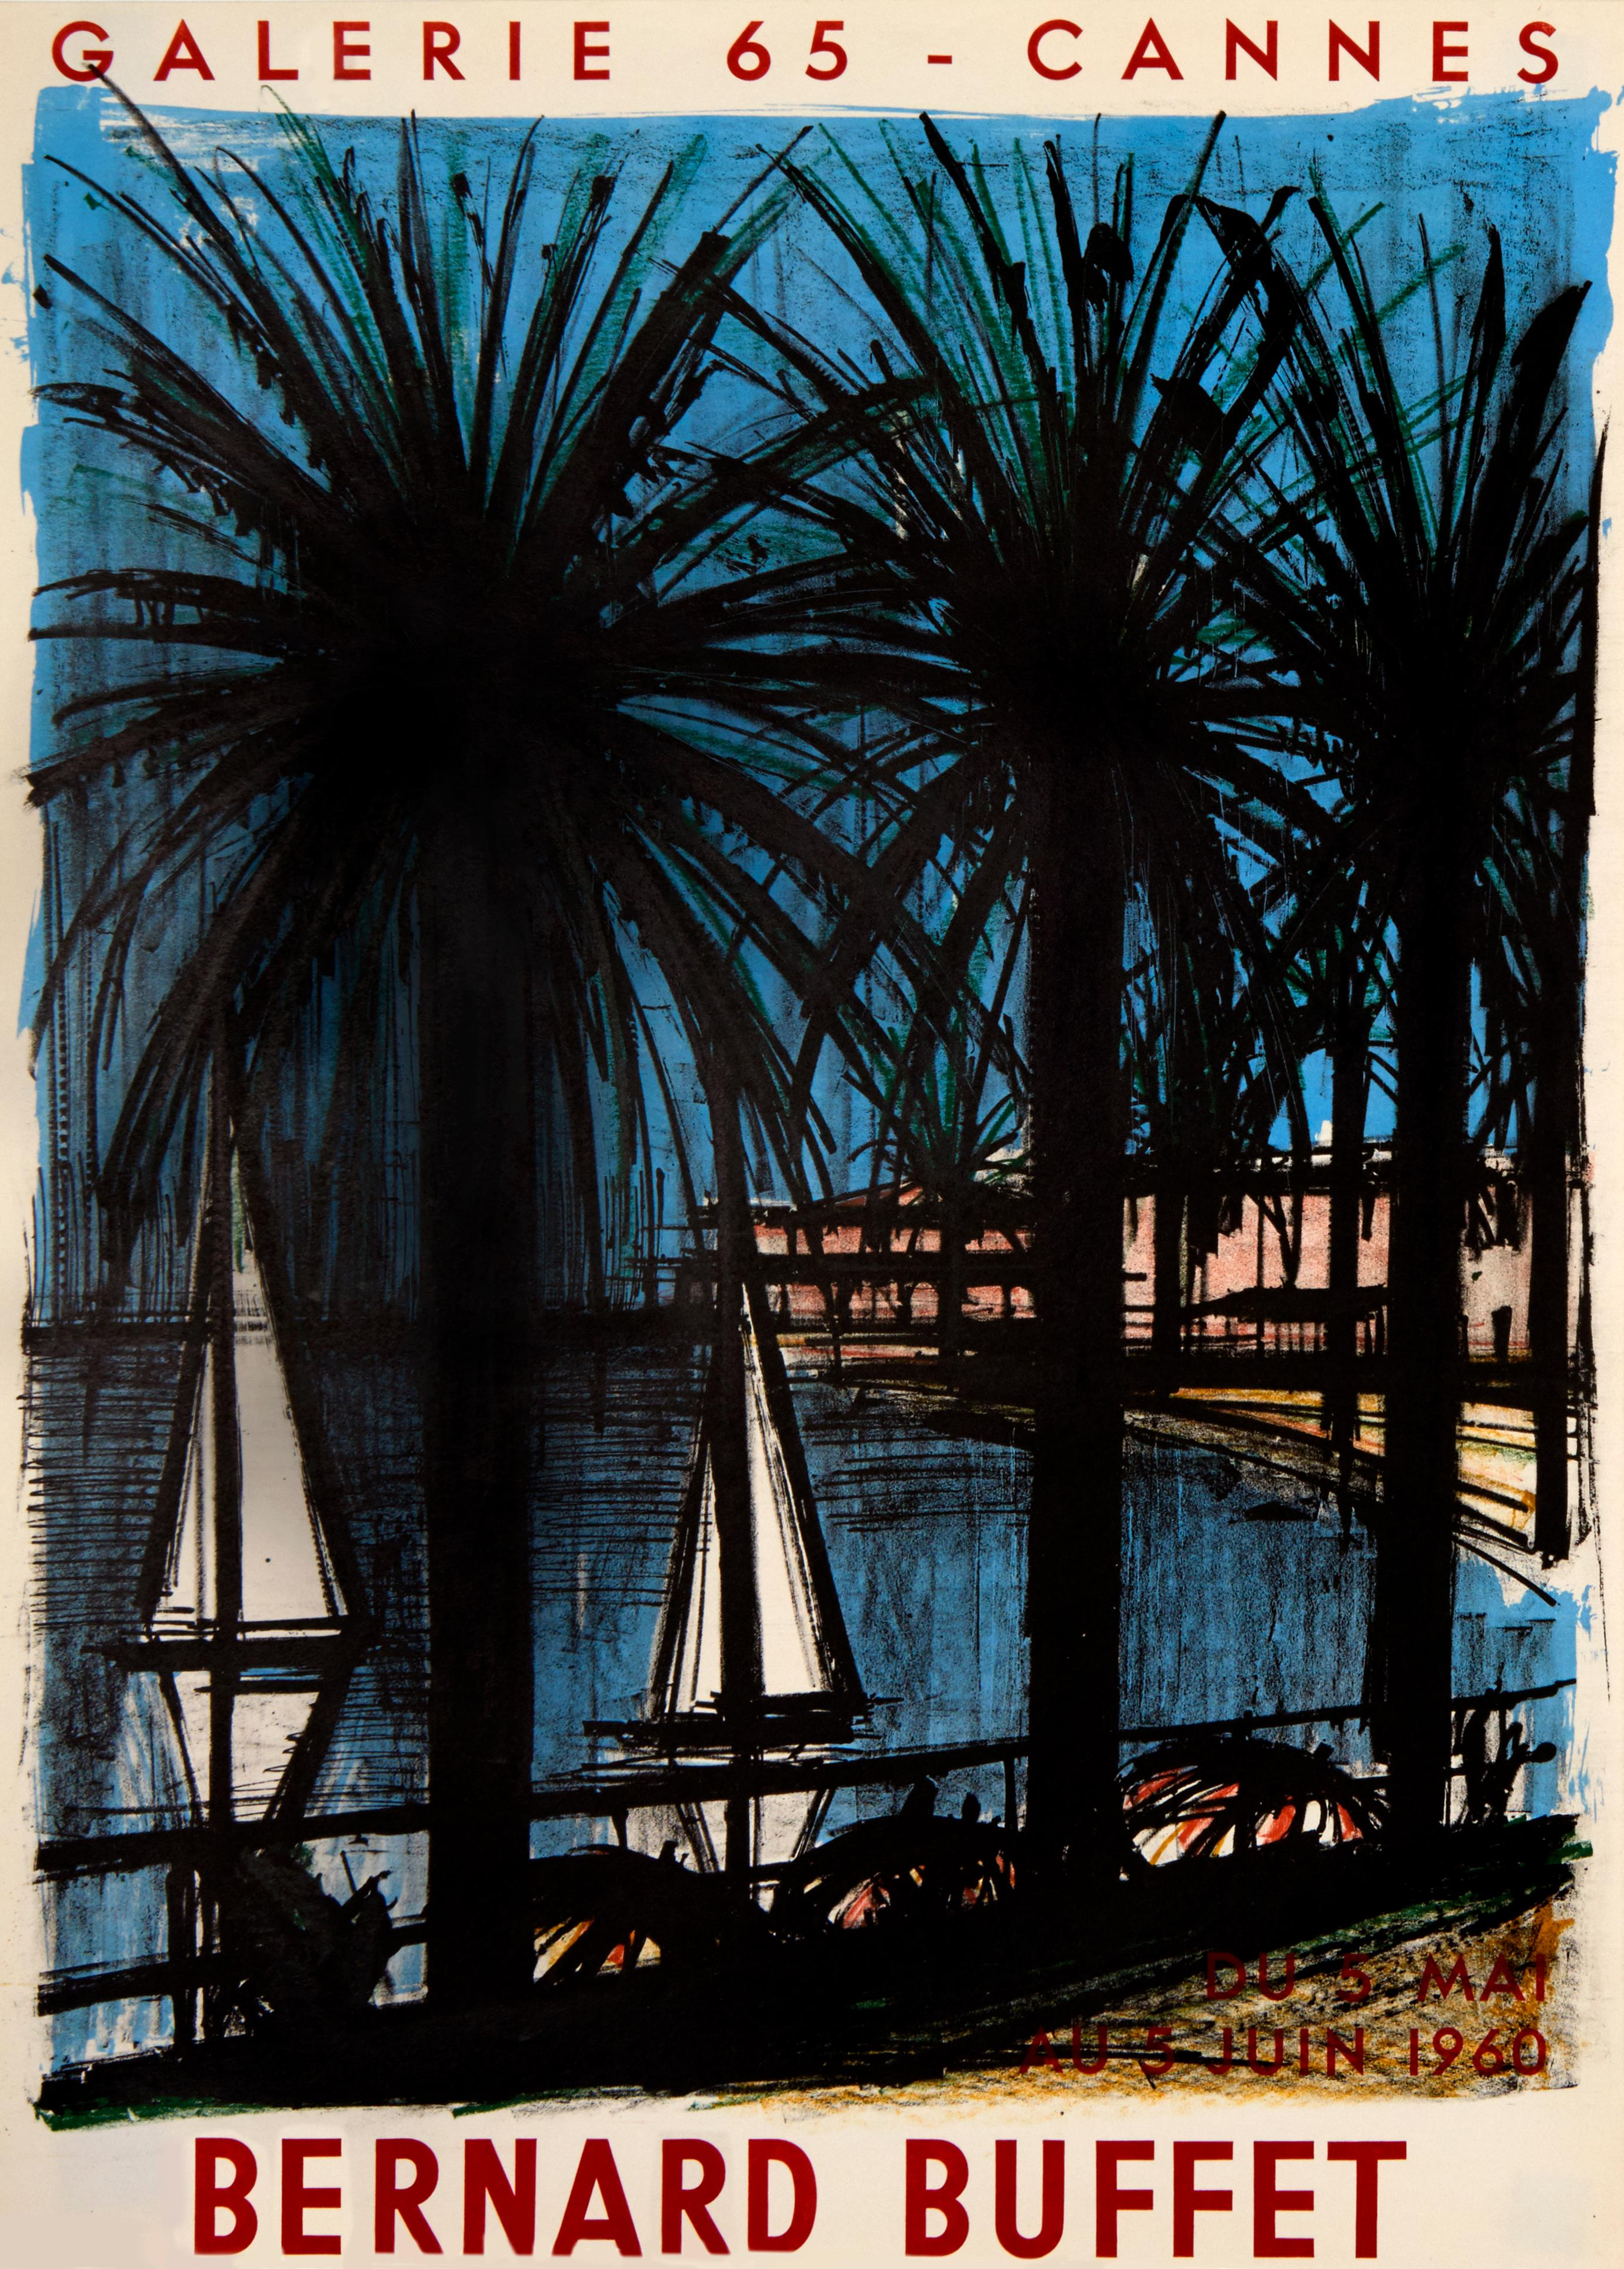 Cannes, Galerie 65 by Bernard Buffet - lithographic poster